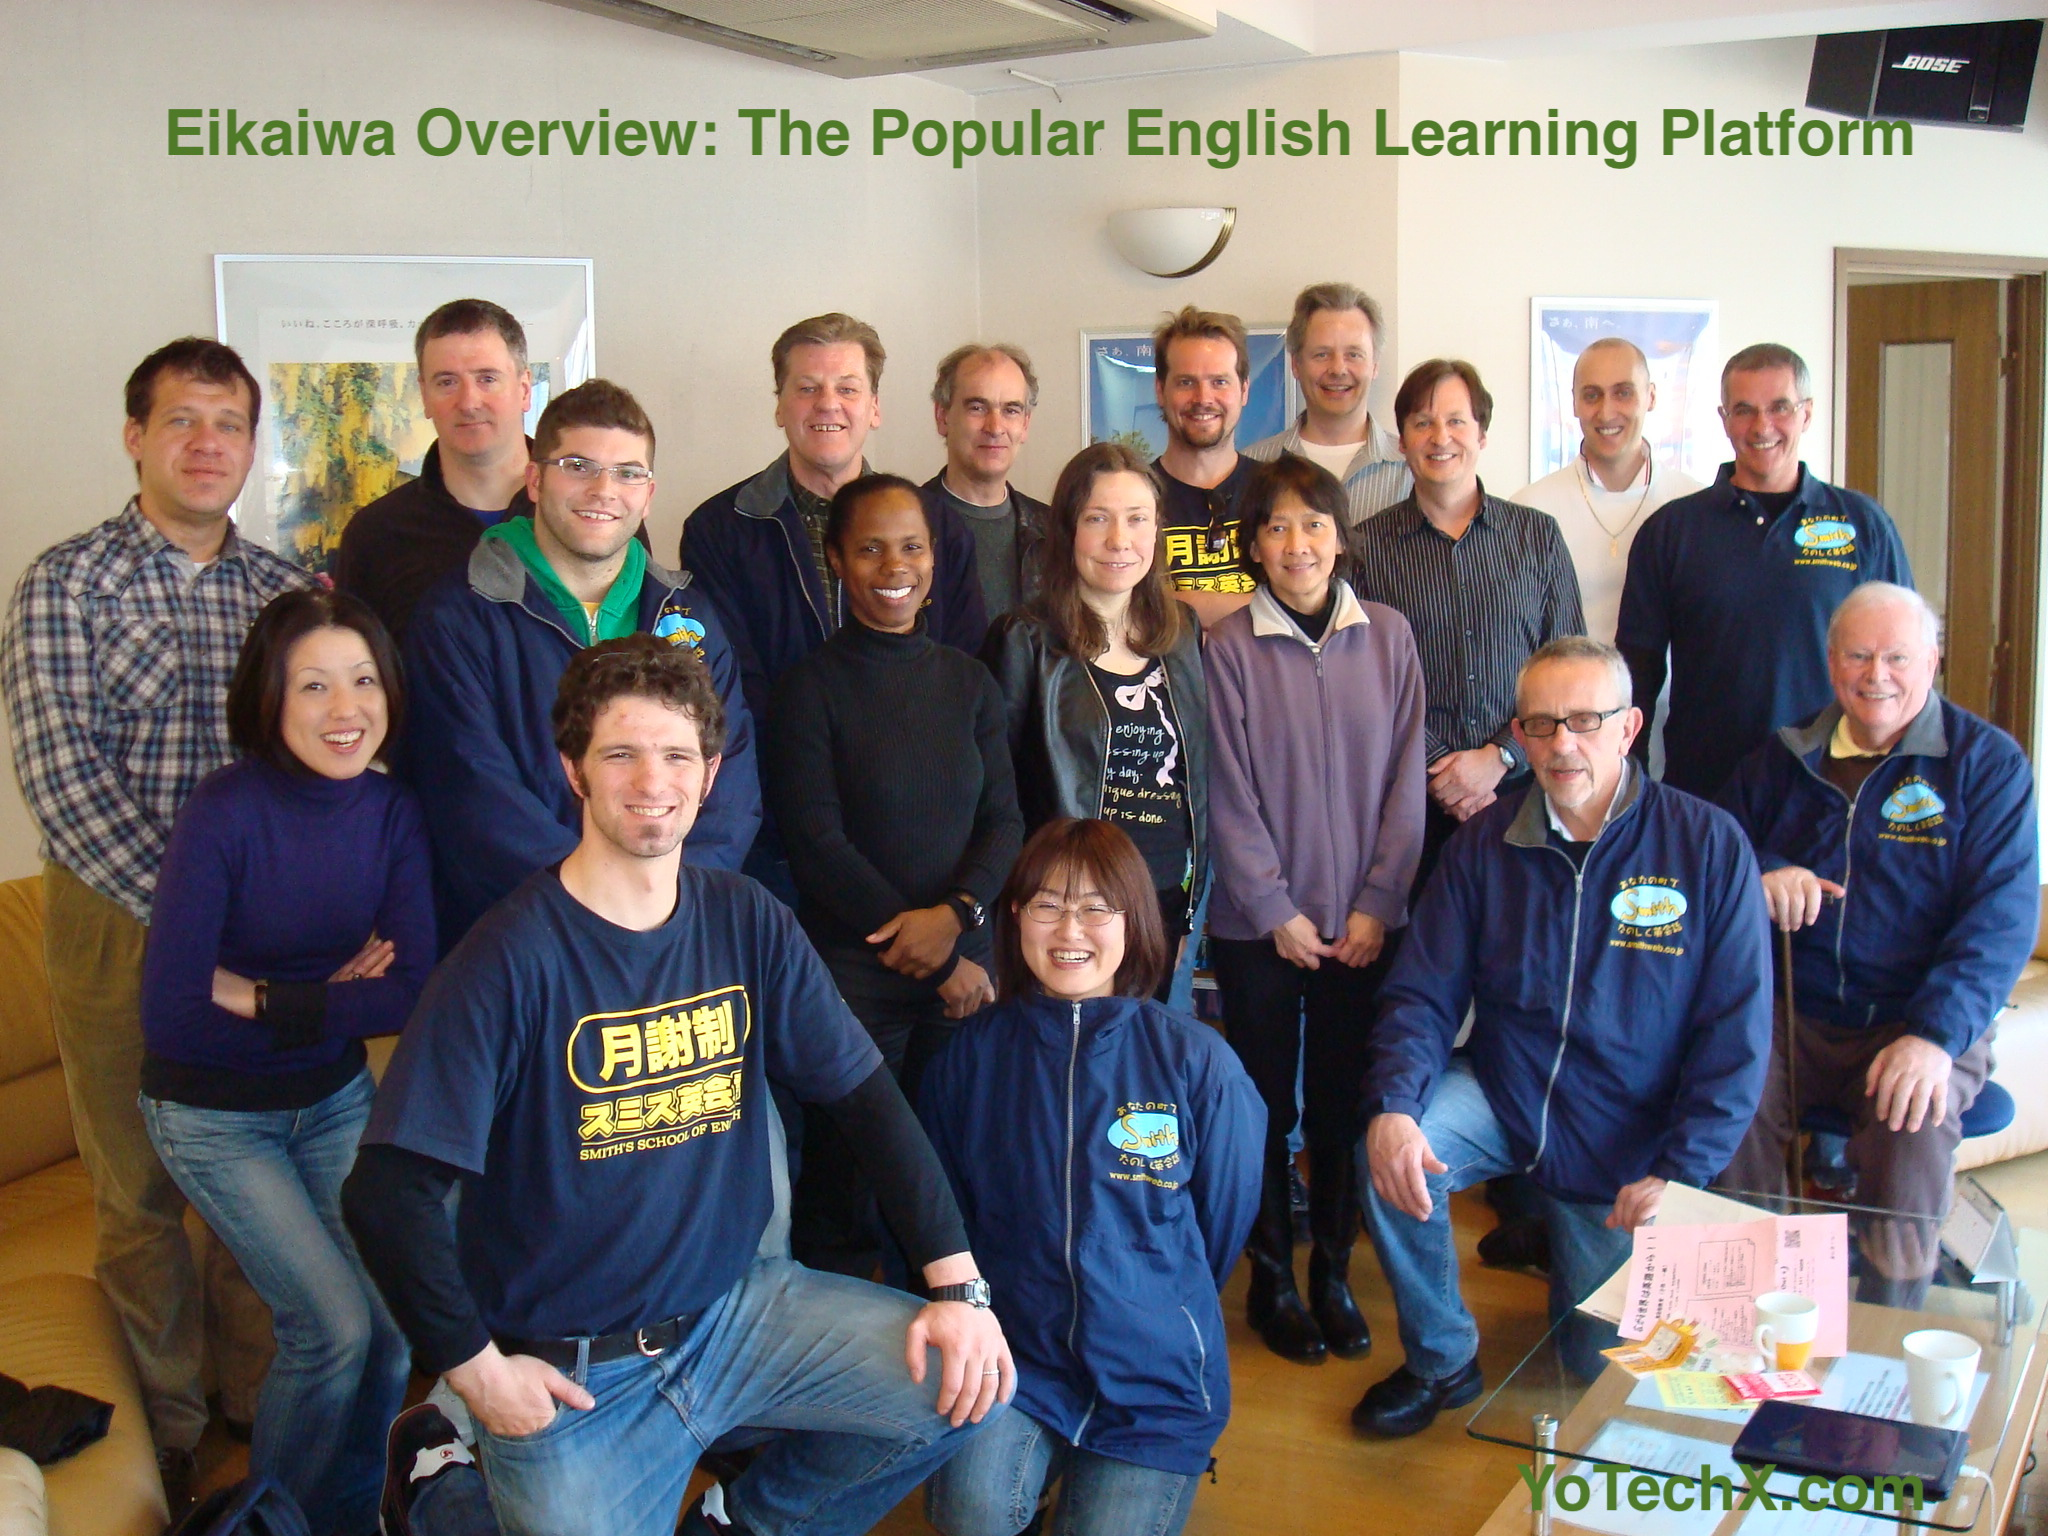 Eikaiwa Overview: All You Need To Know About The Popular English Learning Platform